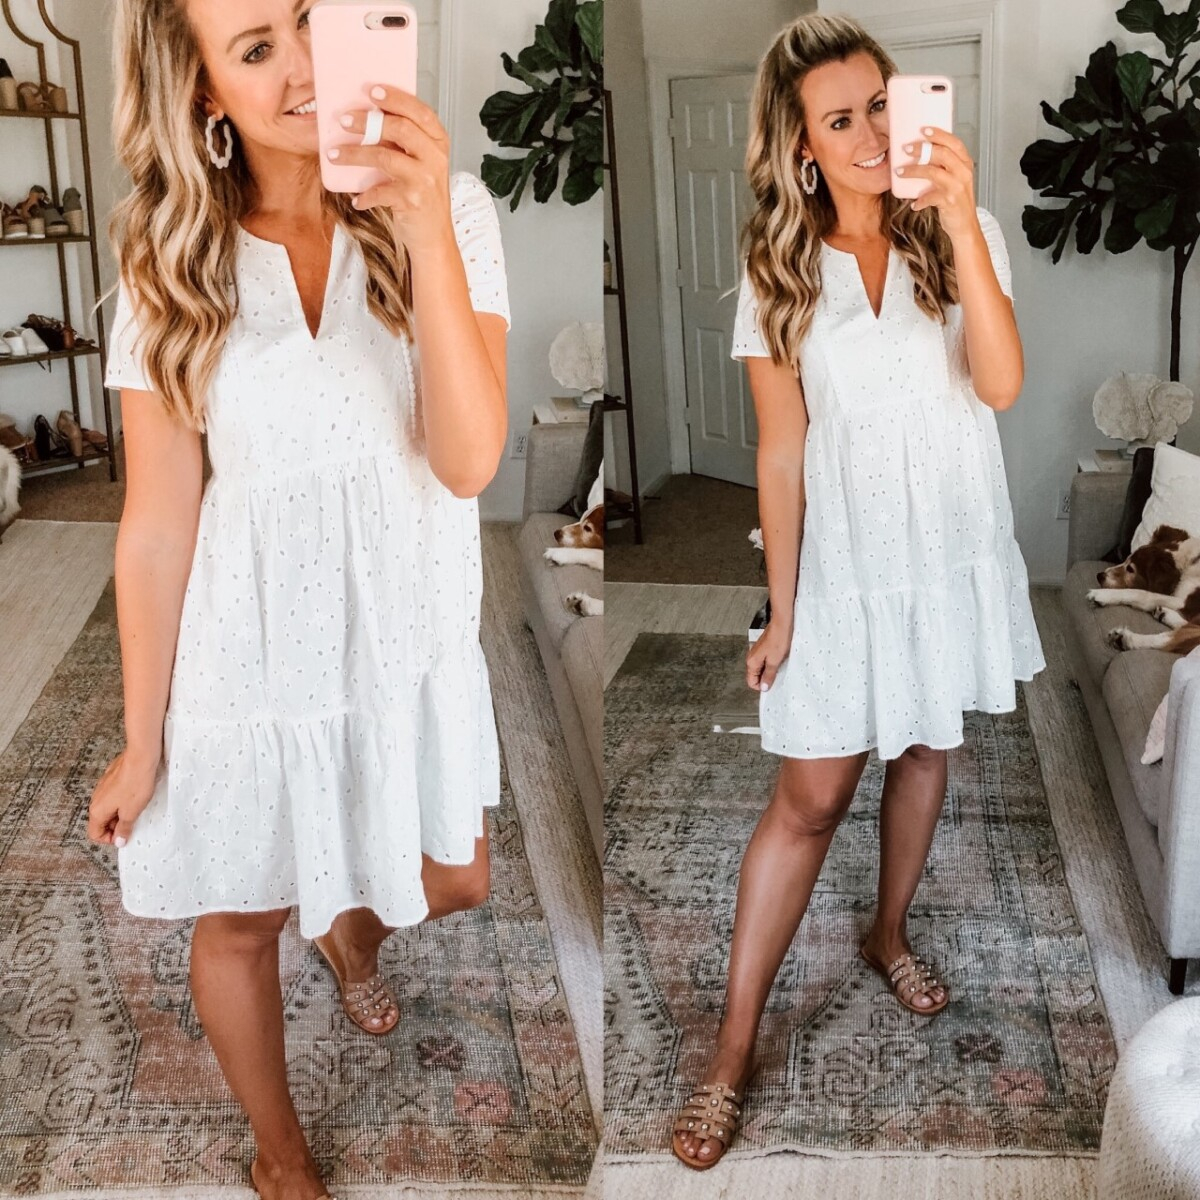 target dresses | White Summer Dresses by popular Houston fashion blog, Haute and Humid: image of a woman wearing a Target Knox Rose Women's Short Sleeve Dress, Nordstrom MARC FISHER LTD Pava Slide Sandal, and Amazon FIFATA statement earrings.